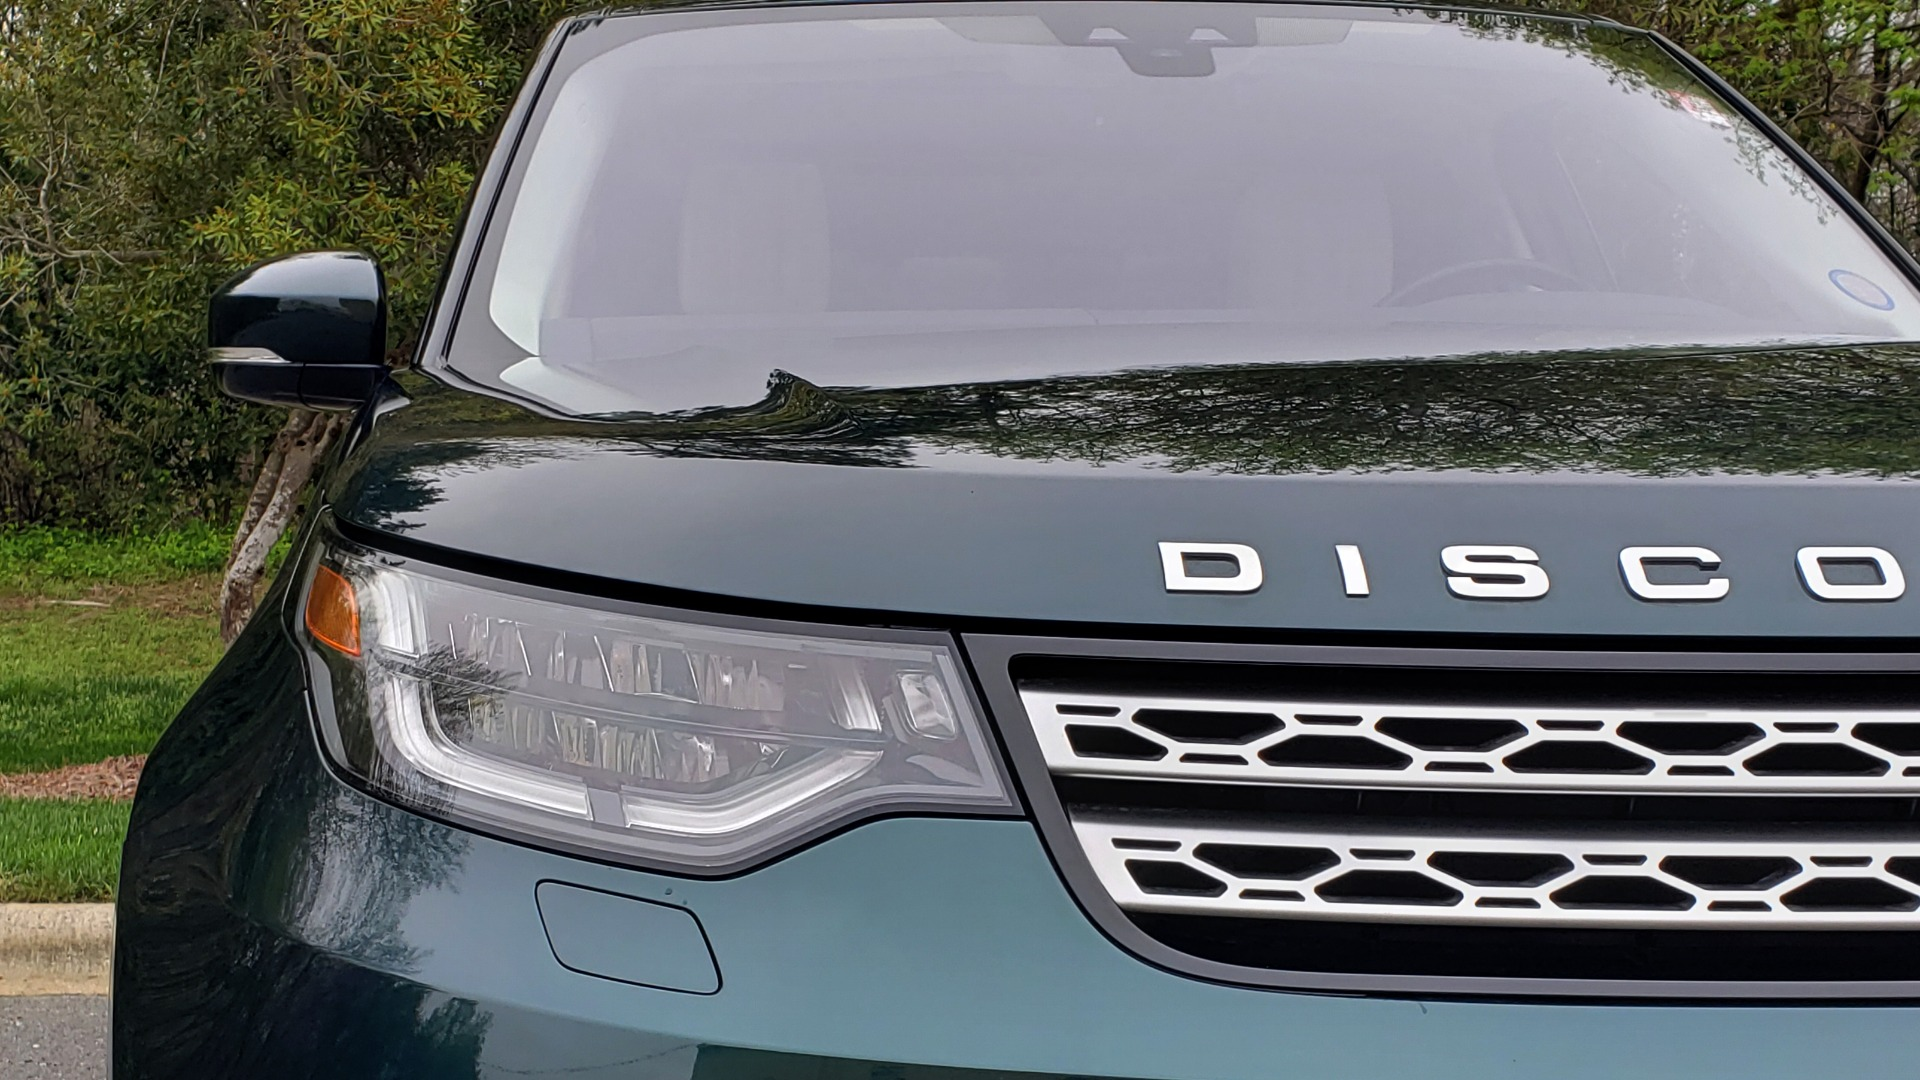 Used 2017 Land Rover DISCOVERY HSE LUXURY / 4WD / NAV / VISION ASST / DRIVE PKG / MERIDIAN for sale Sold at Formula Imports in Charlotte NC 28227 30